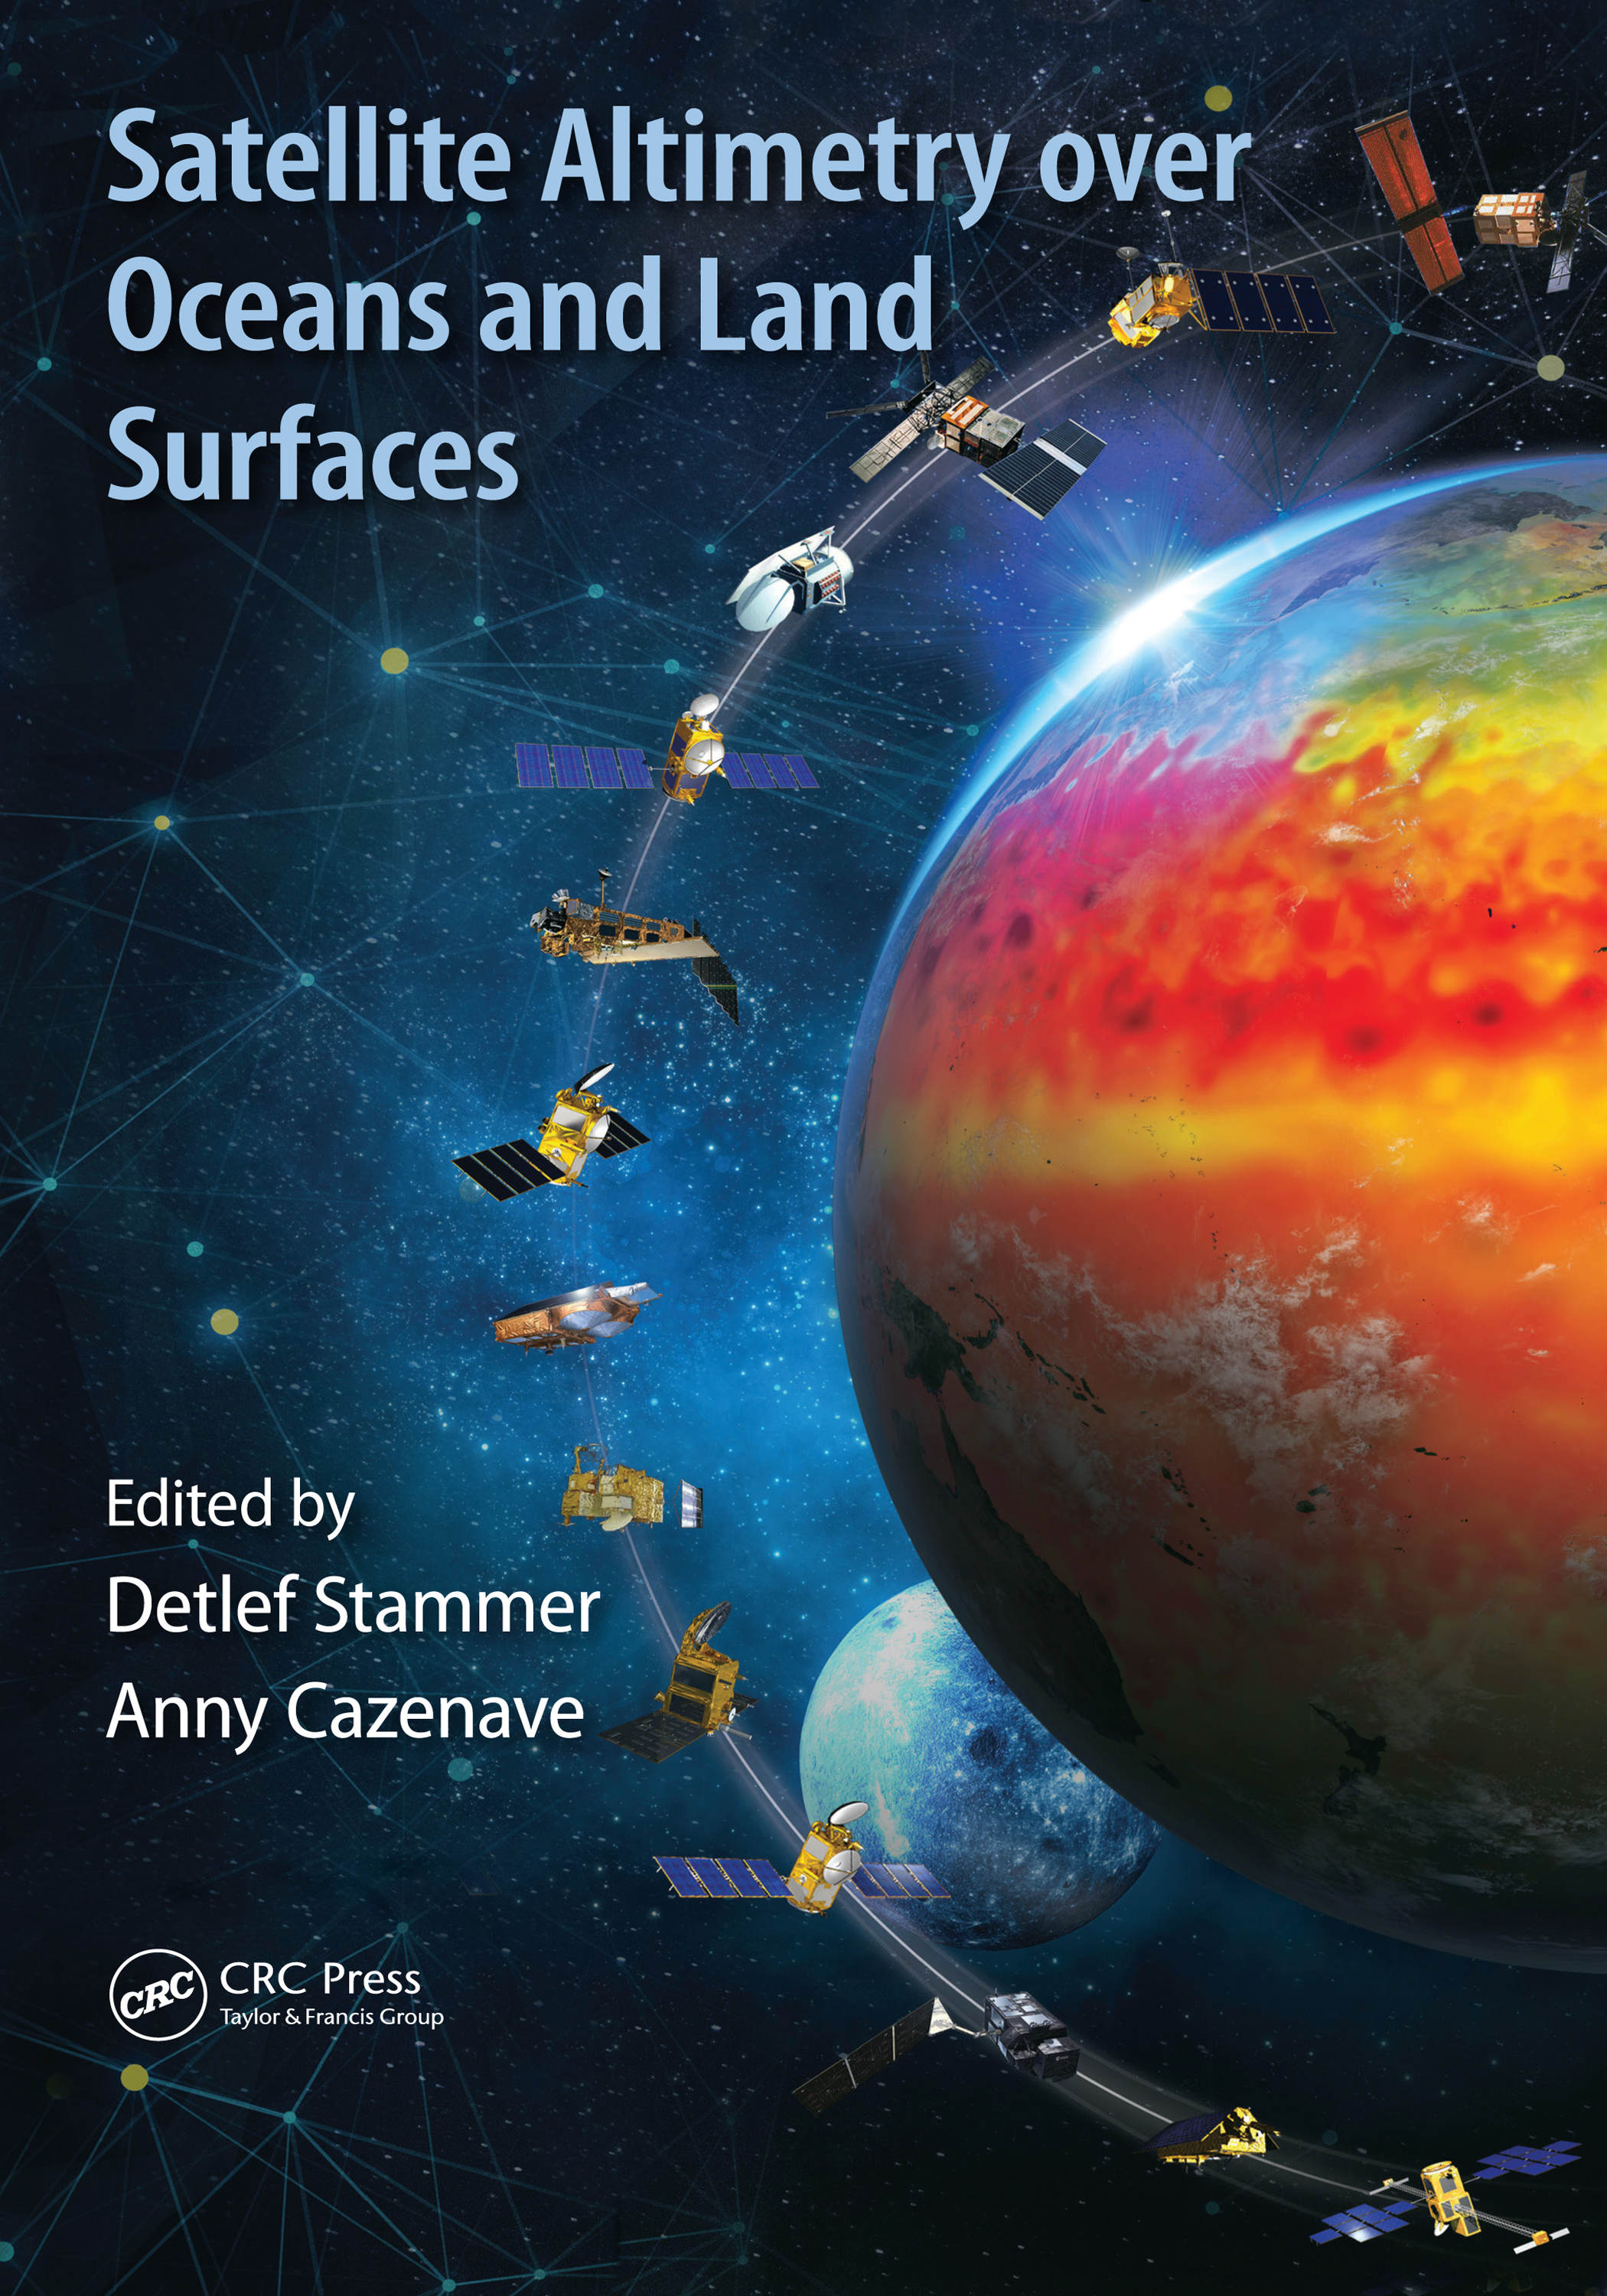 Satellite Altimetry Over Oceans and Land Surfaces